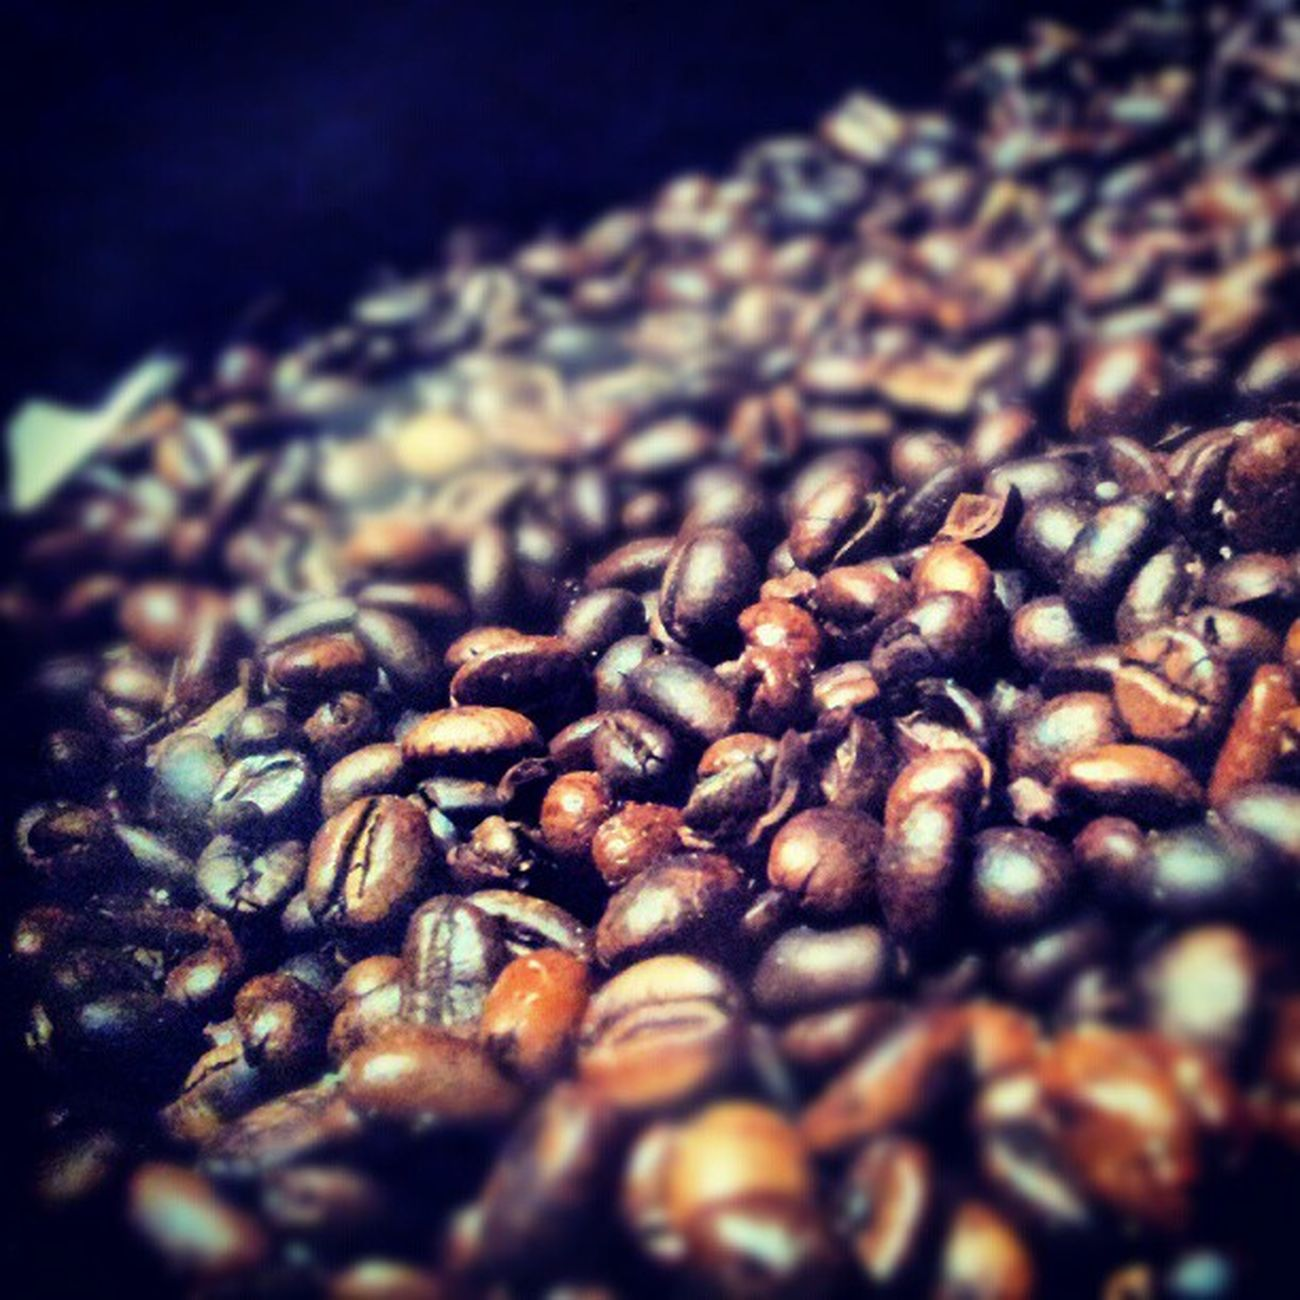 Roasted Coffee قهوة بن